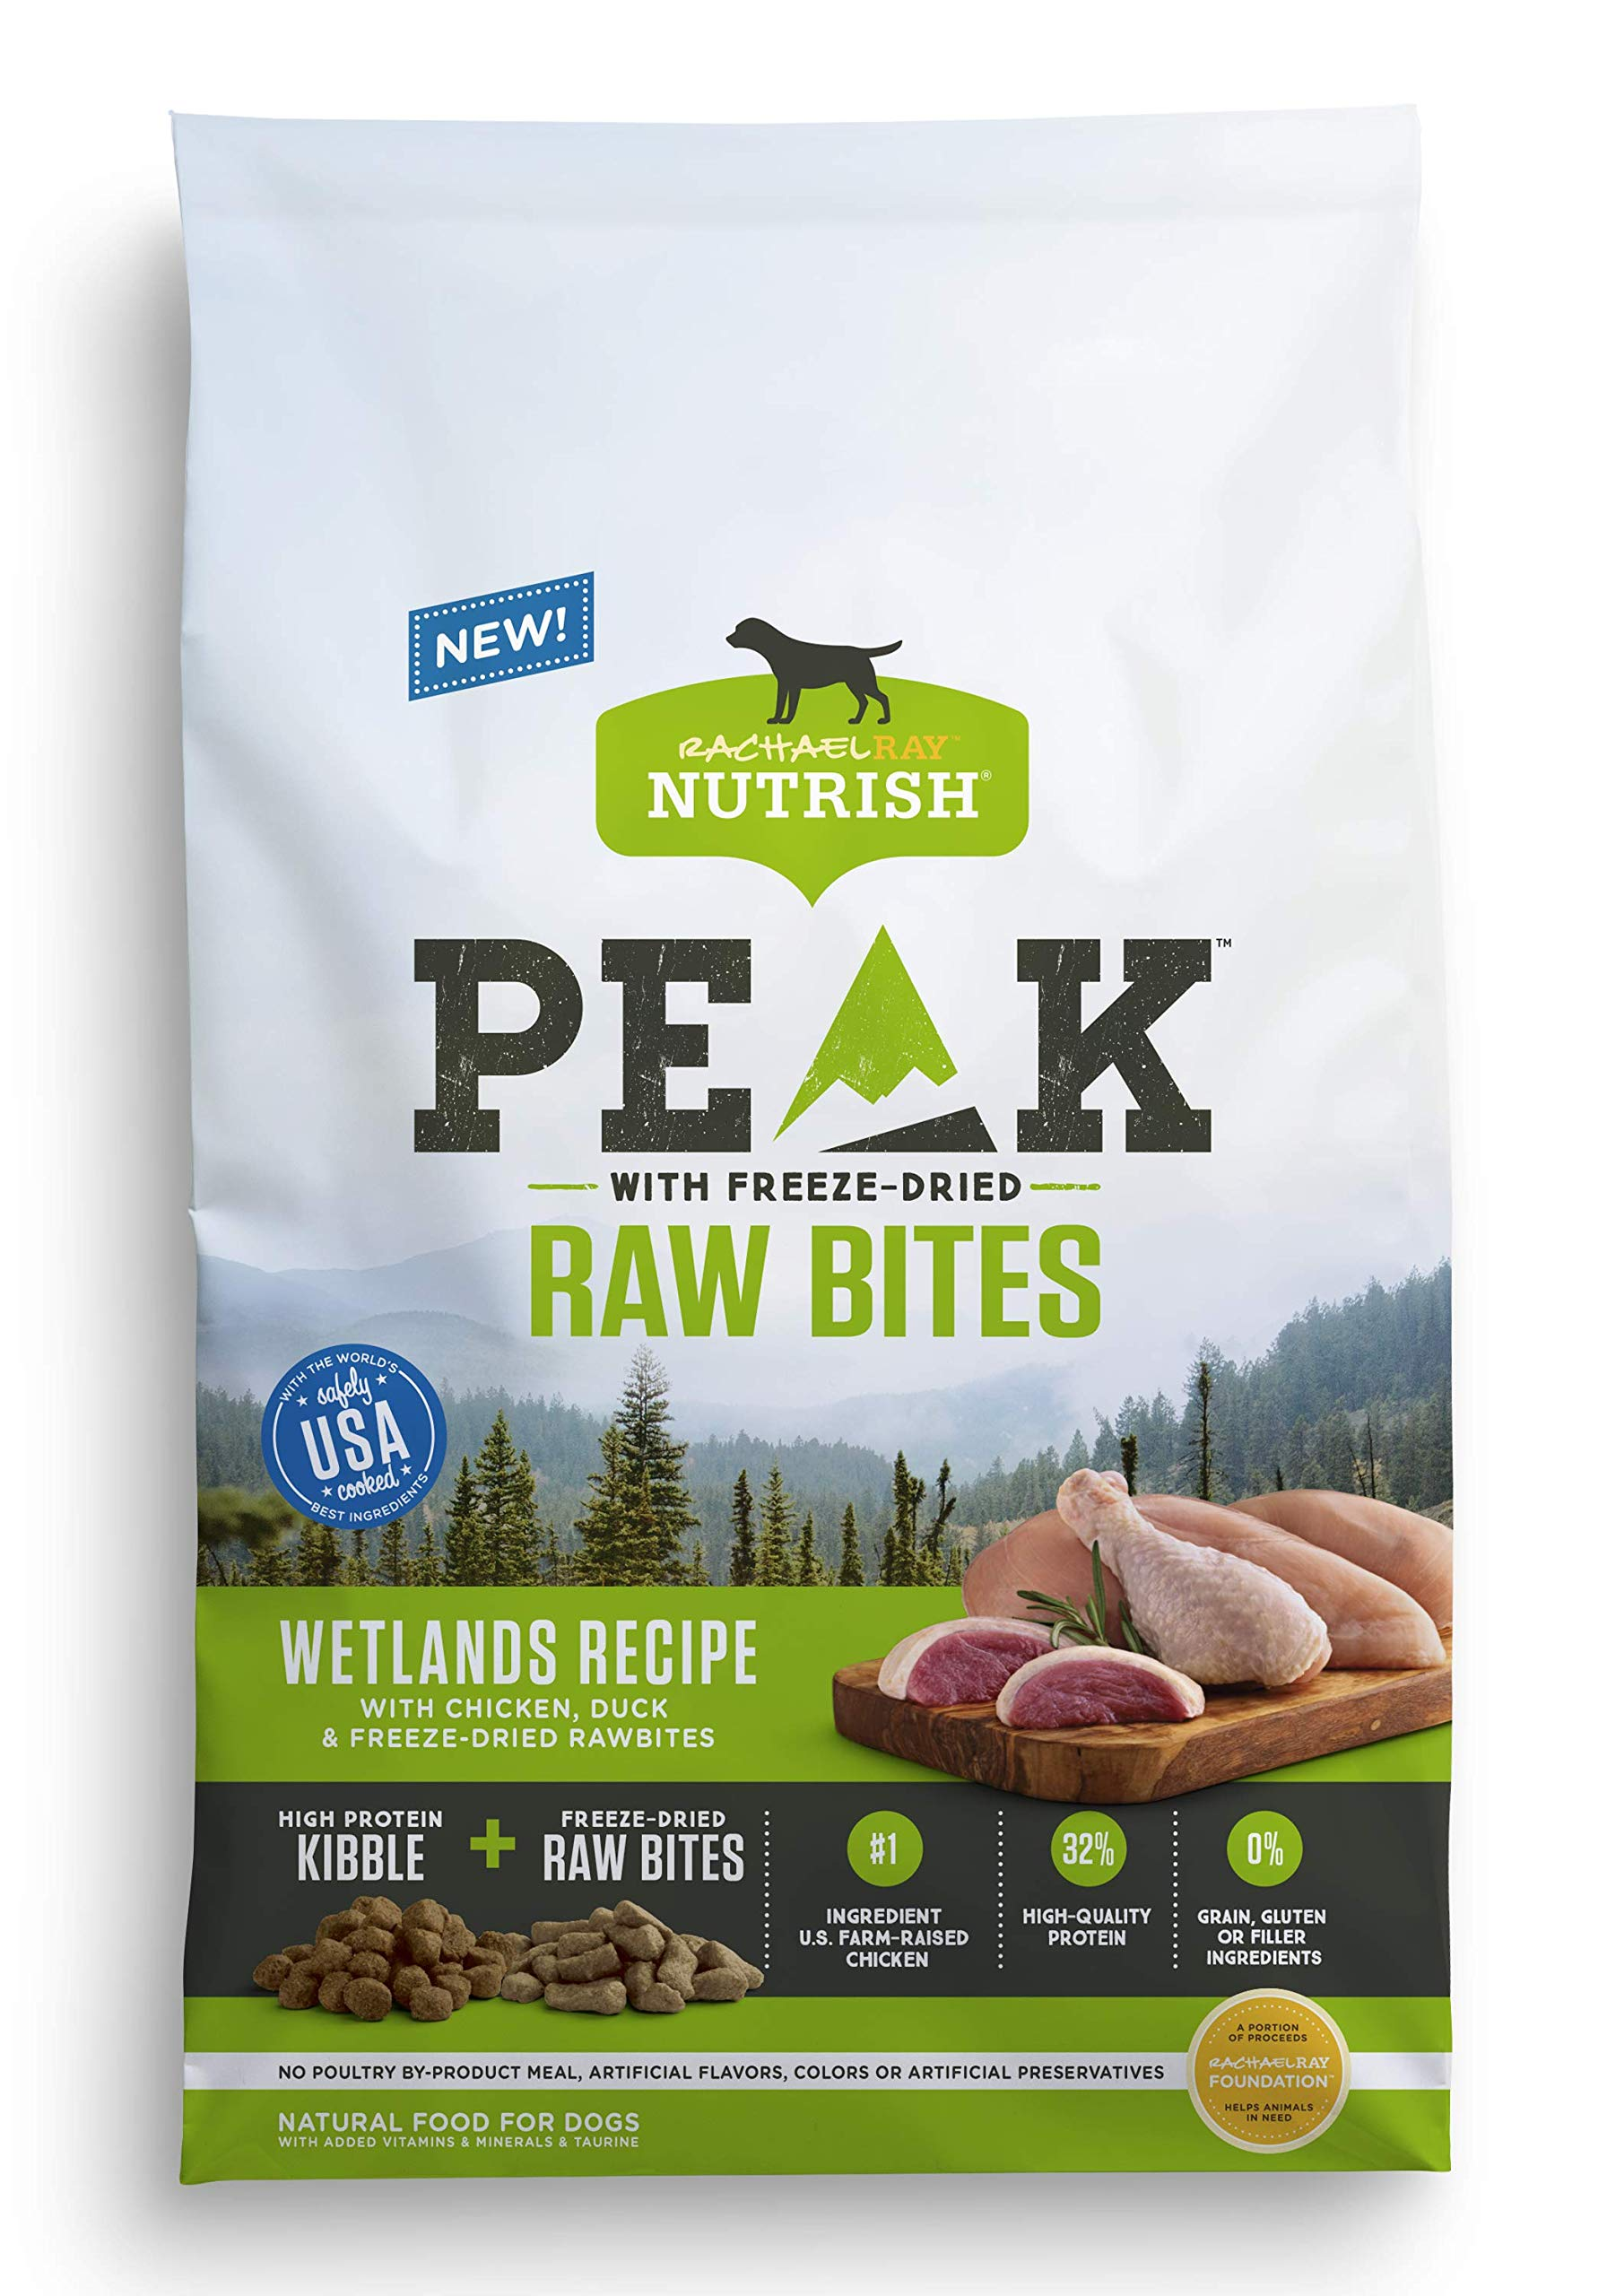 Rachael Ray Nutrish PEAK Wetlands Recipe with Chicken, Duck and Freeze-Dried Raw Bites Dry Dog Food, 23 Pounds by Rachael Ray Nutrish